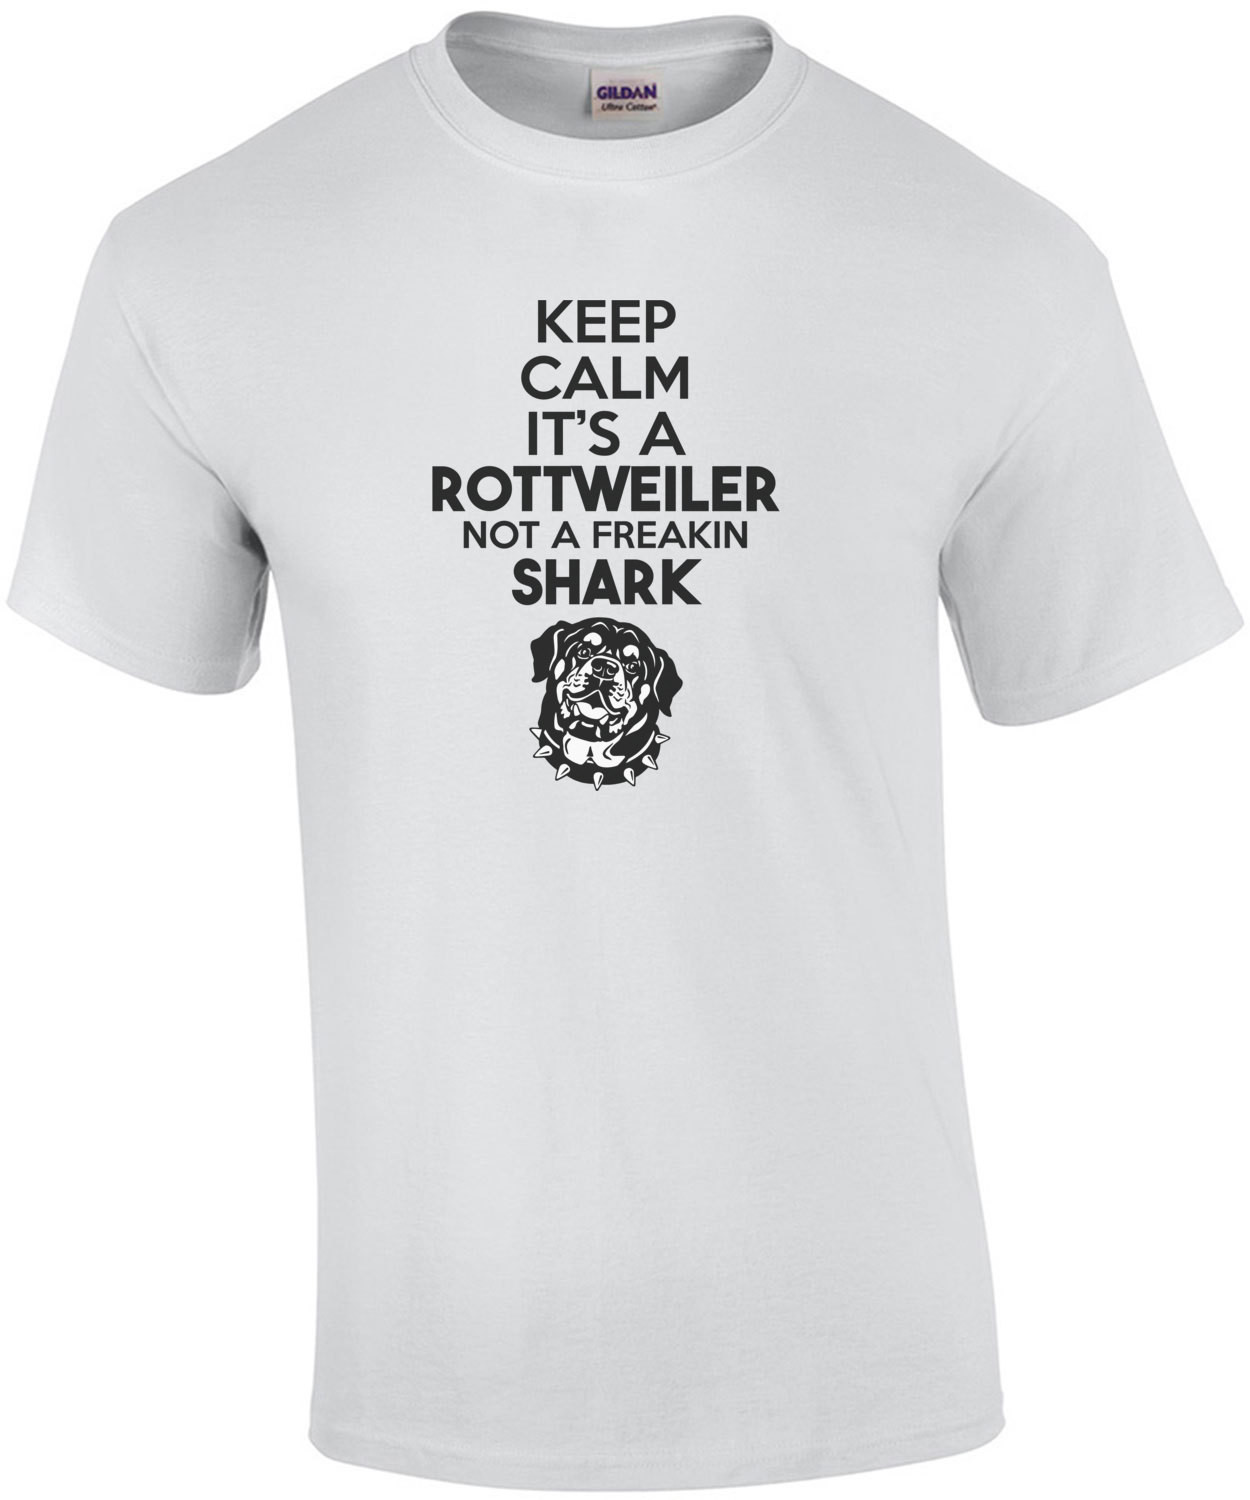 Keep Calm it's a rottweiler not a freakin shark - rottweiler dog t-shirt